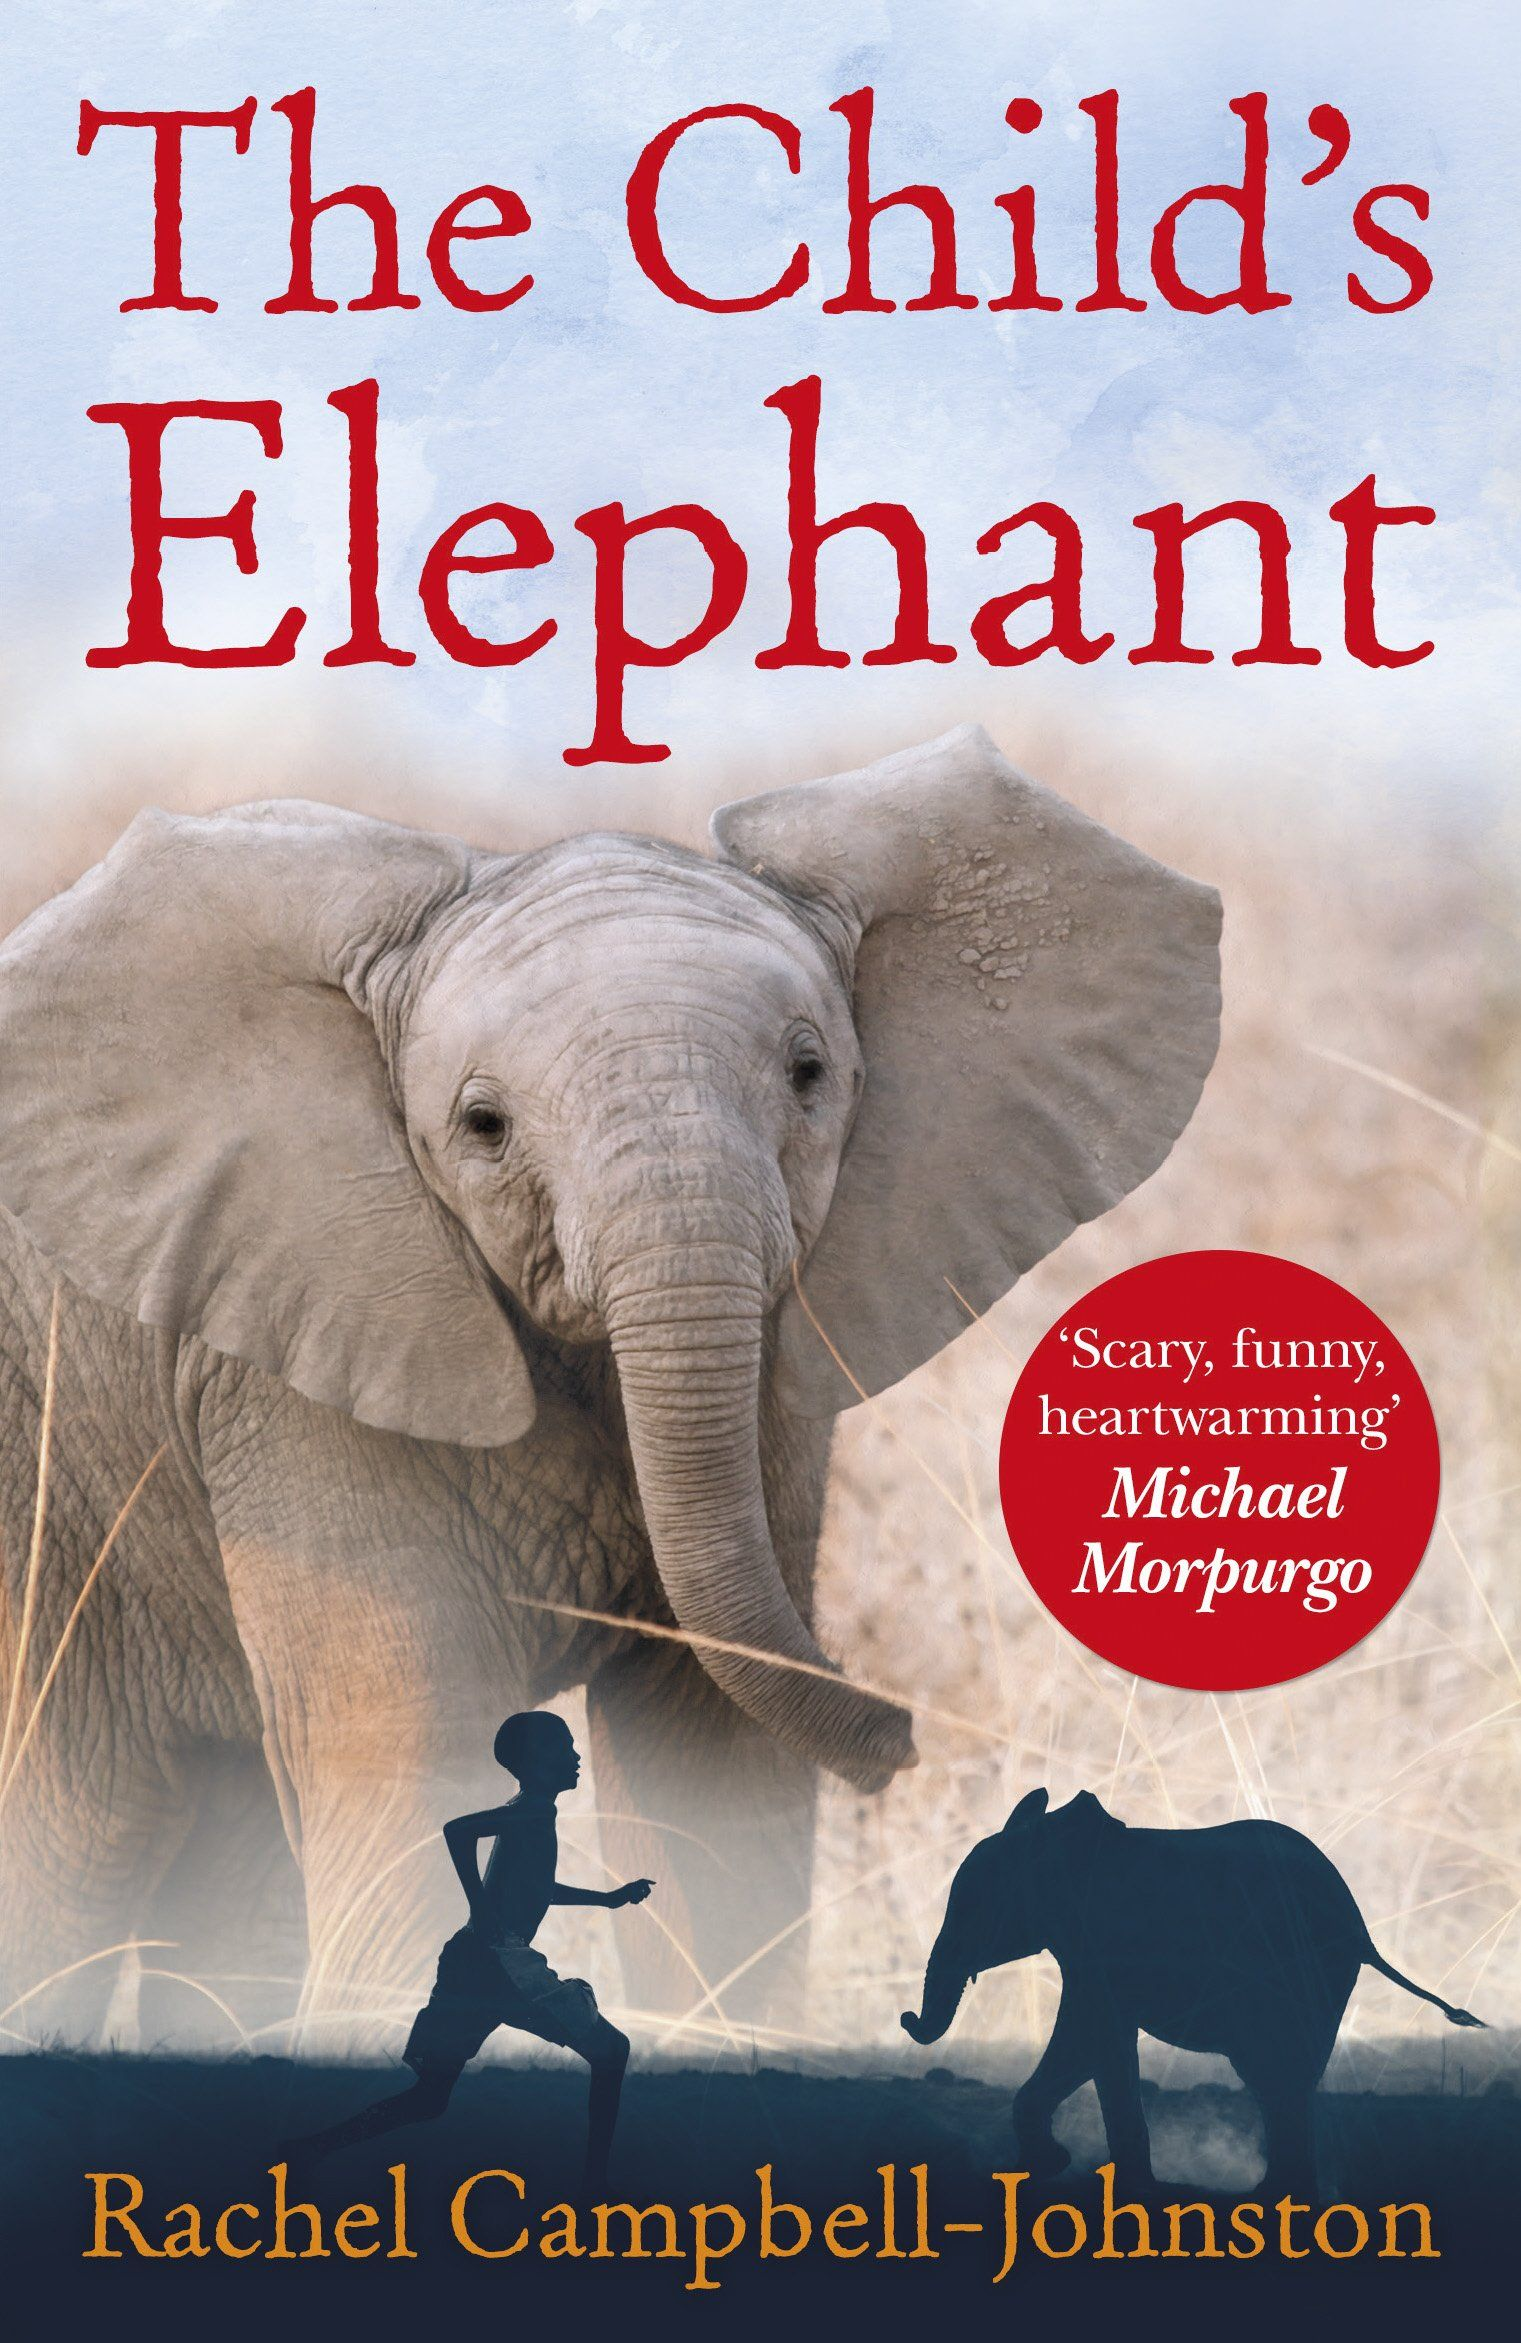 Rachel Campbelljohnston (2014) The Child's Elephant Oxford: David  Fickling Books